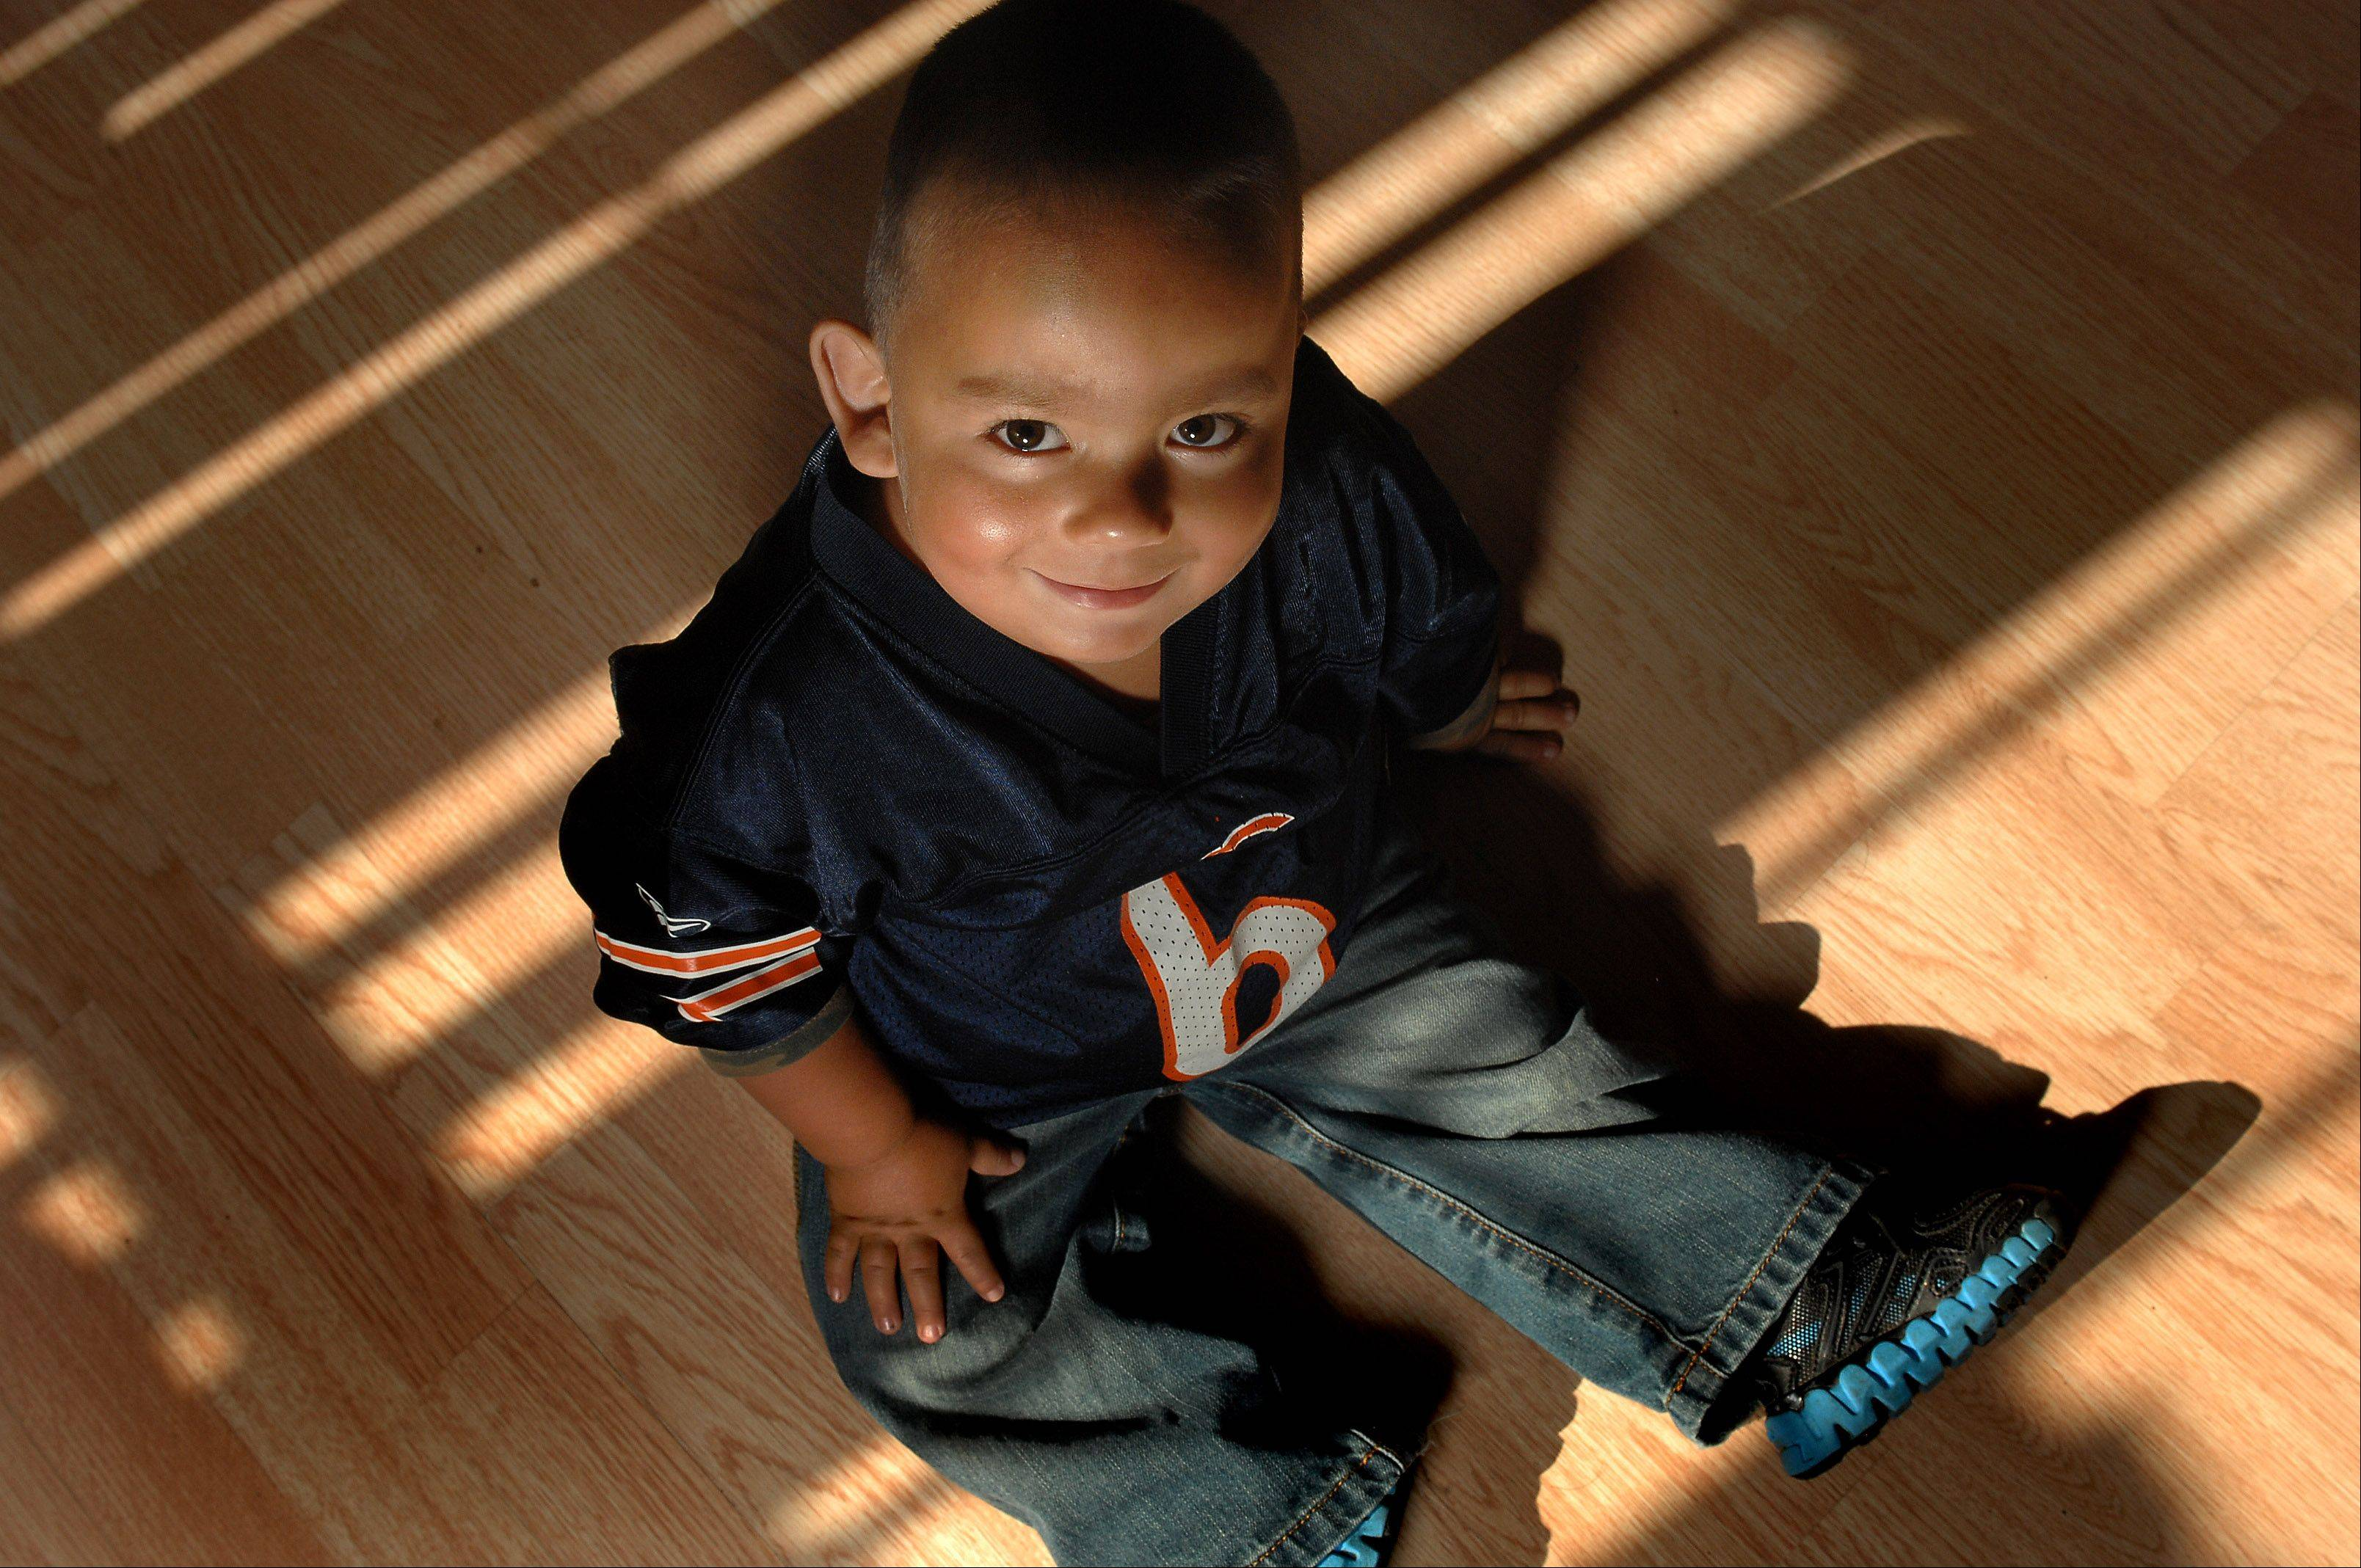 Nathan Saavedra will be 3 in November. He needs a kidney after the last donation failed.